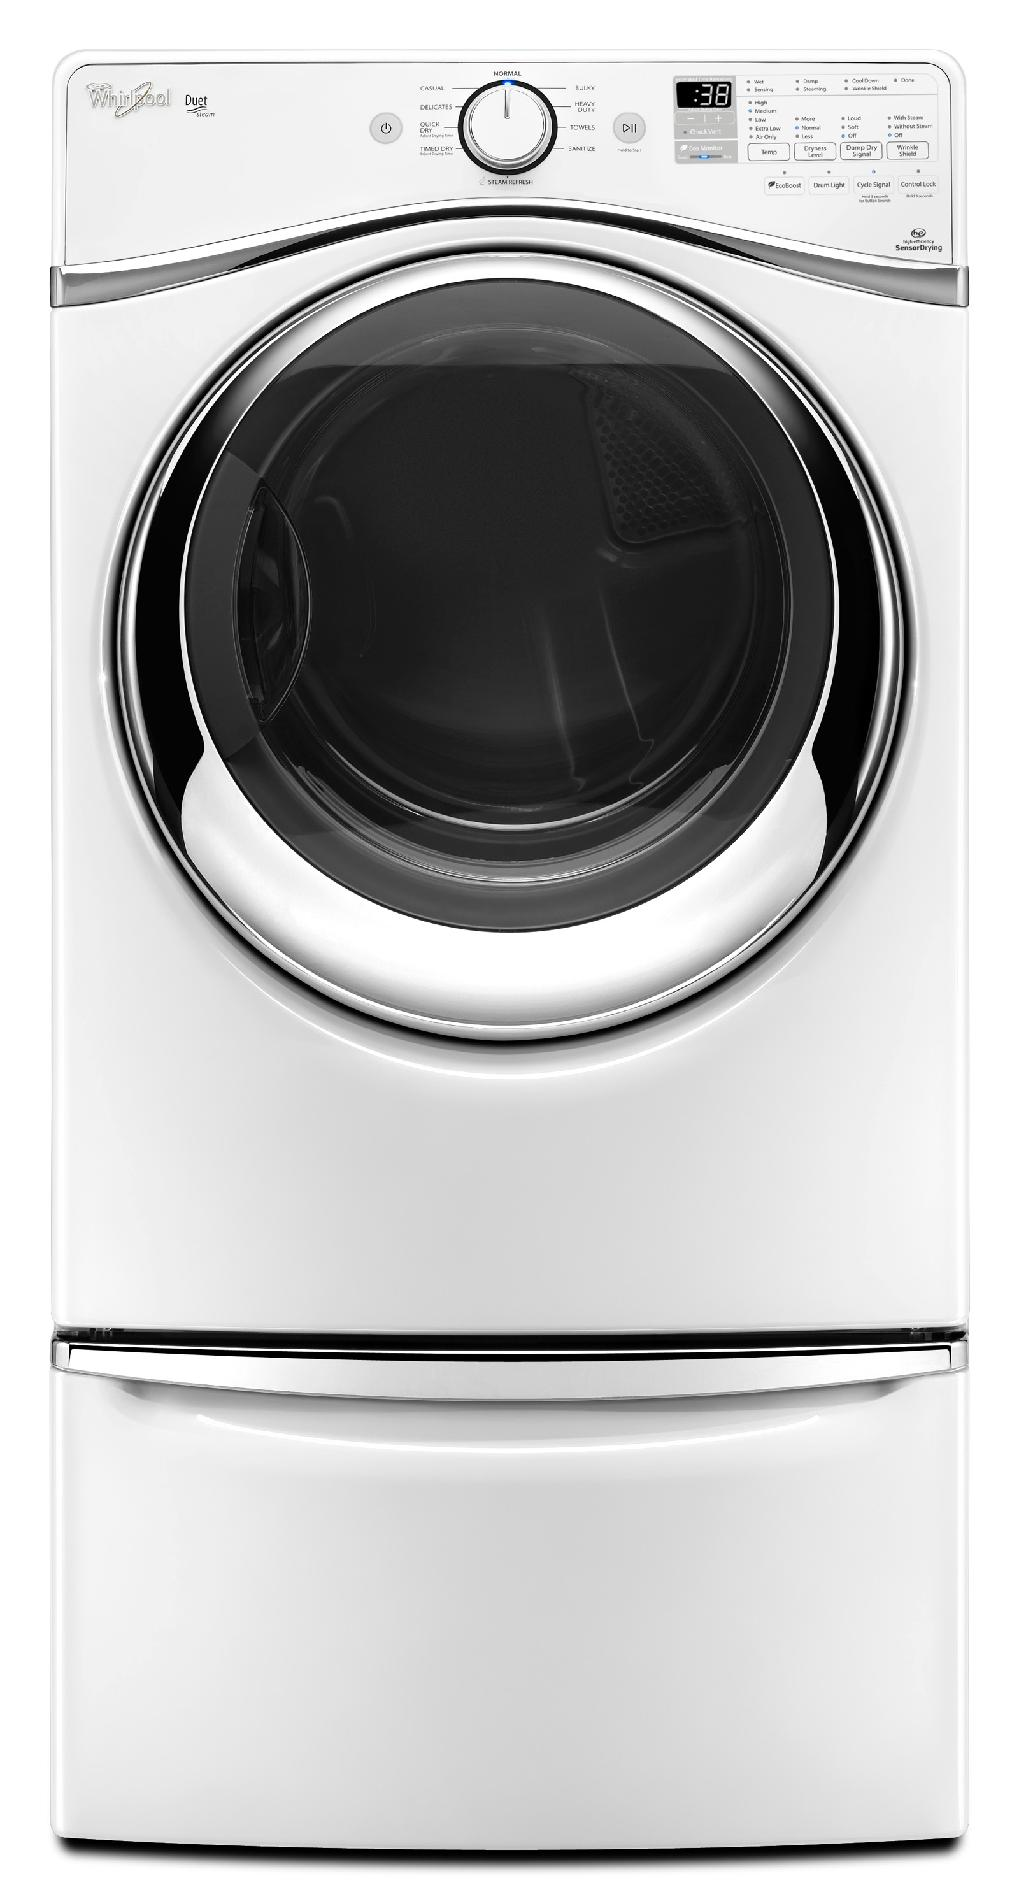 Whirlpool WED95HEDW 7.4 cu. ft. Duet® Electric Dryer w/ Stainless Steel Drum - White